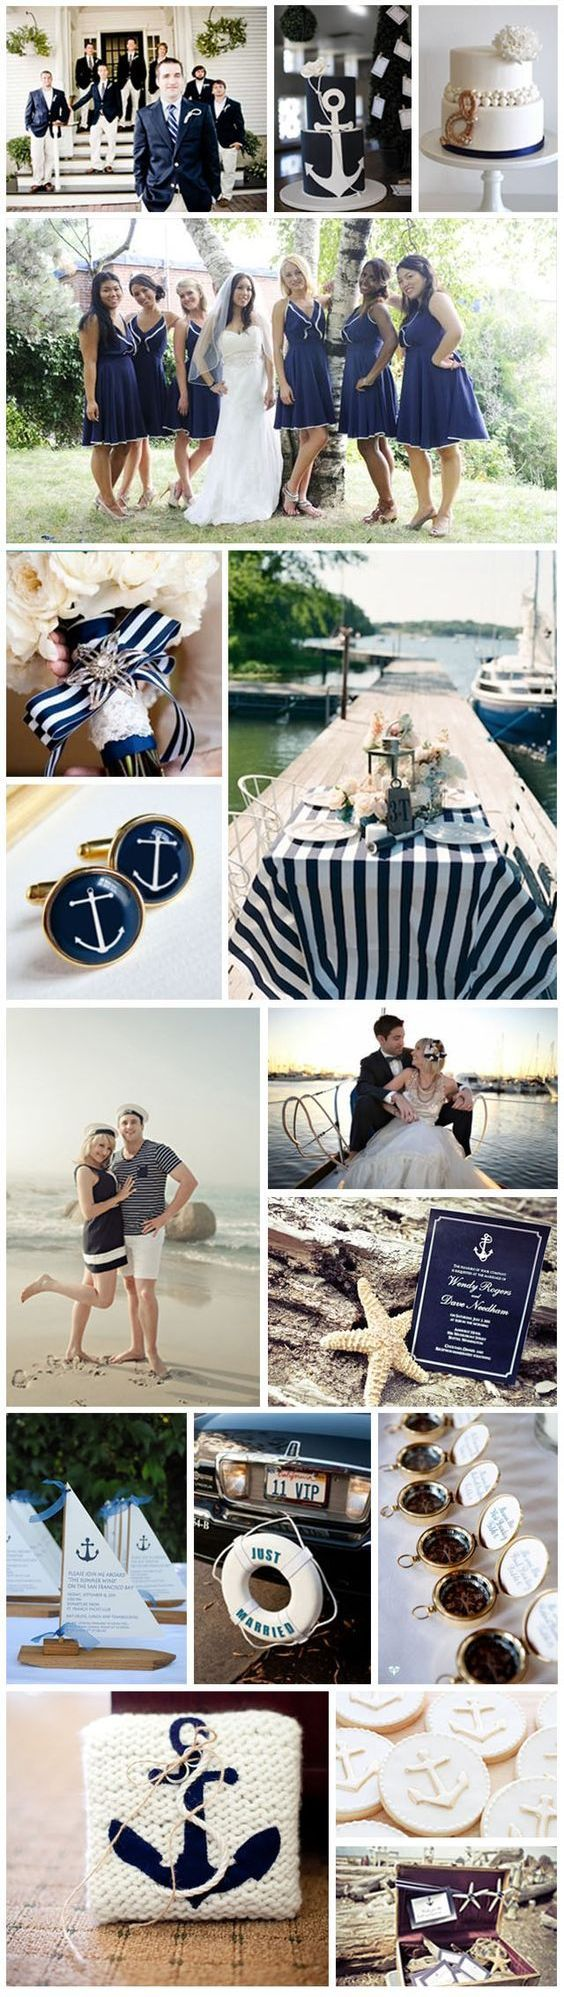 Nautical Theme Wedding Ideas /  http://www.deerpearlflowers.com/incorporate-anchors-into-your-nautical-wedding/